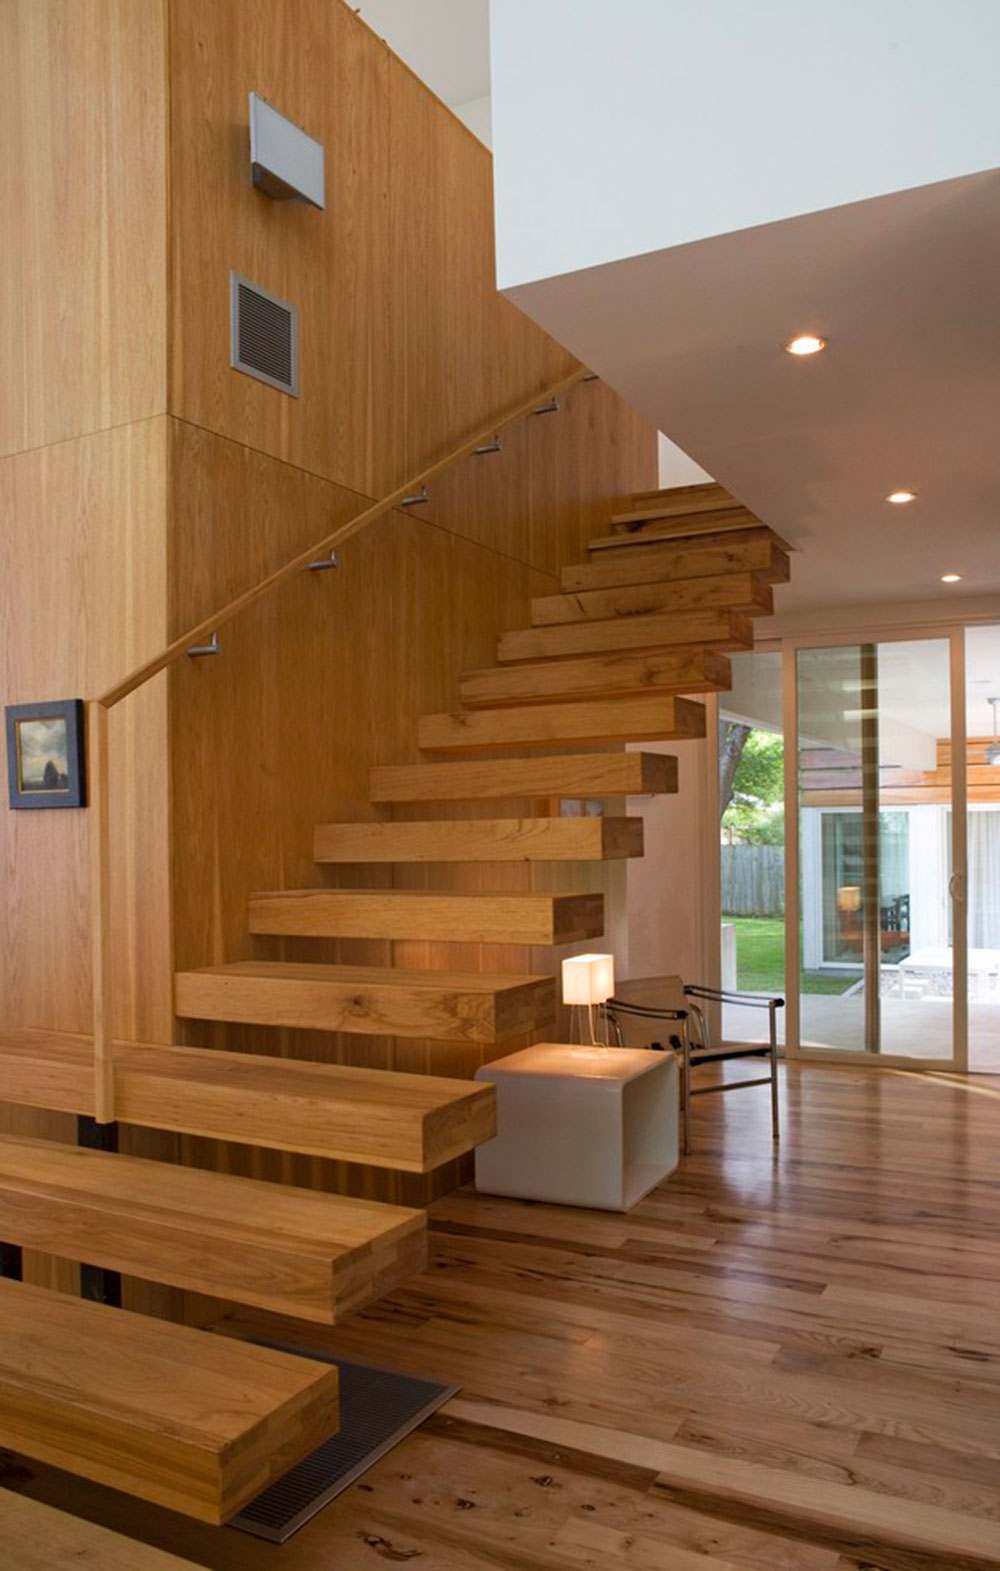 Exquisite Staircase Design exquisite floating staircase designs for your dream homes Modern And Exquisite Floating Staircase5 Modern And Exquisite Floating Staircase Designs